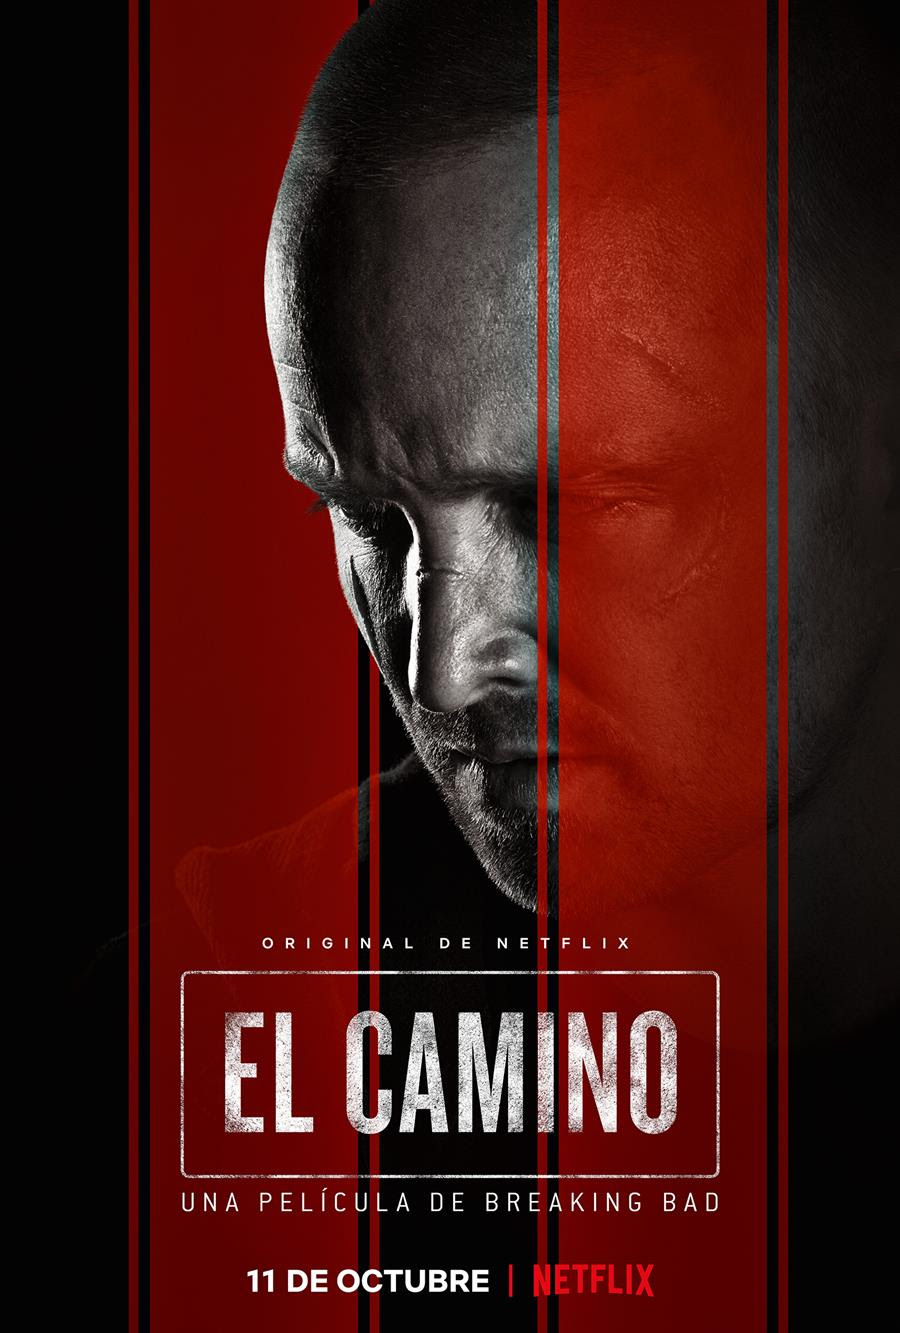 El Camino Breaking Bad - Poster.jpg